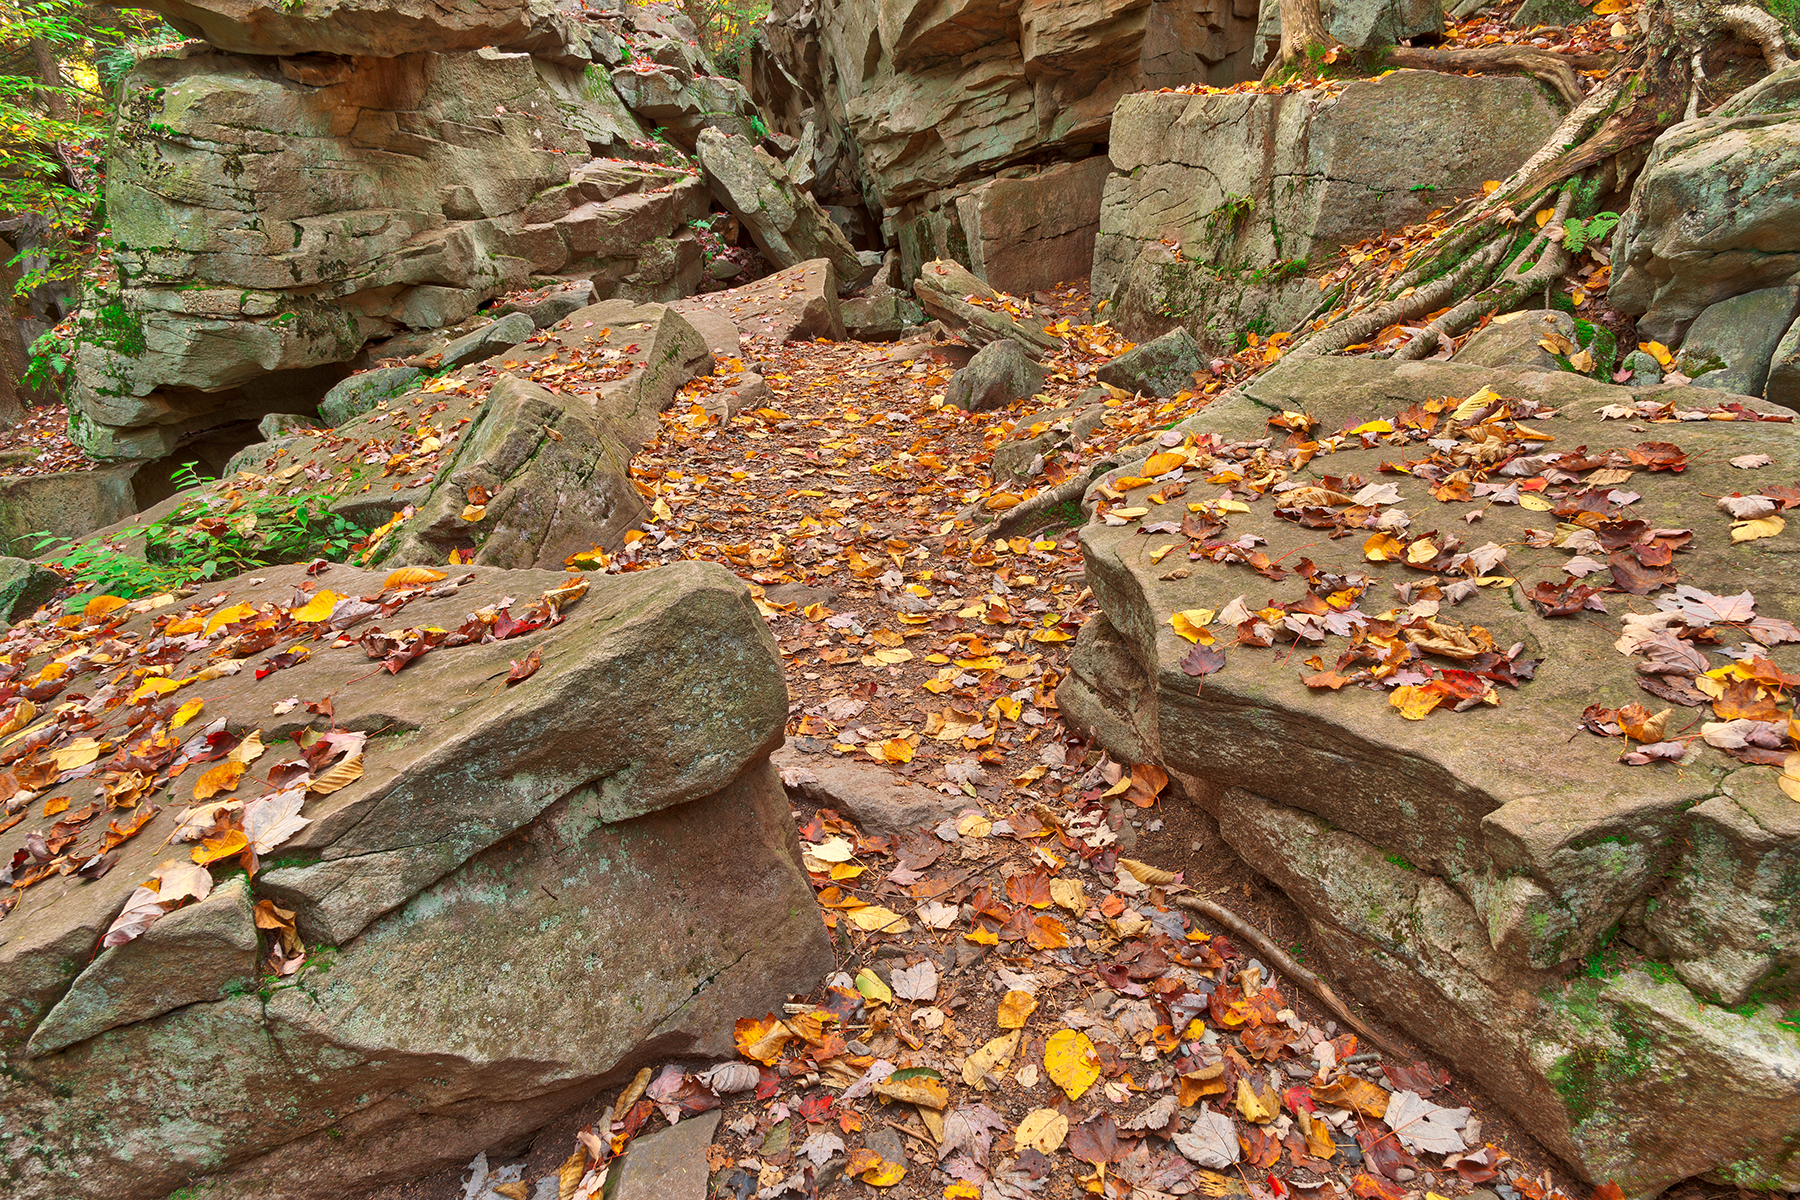 Autumn Midway Crevasse - Ricketts Glen HDR, Plants, Rugged, Rough, Roots, HQ Photo